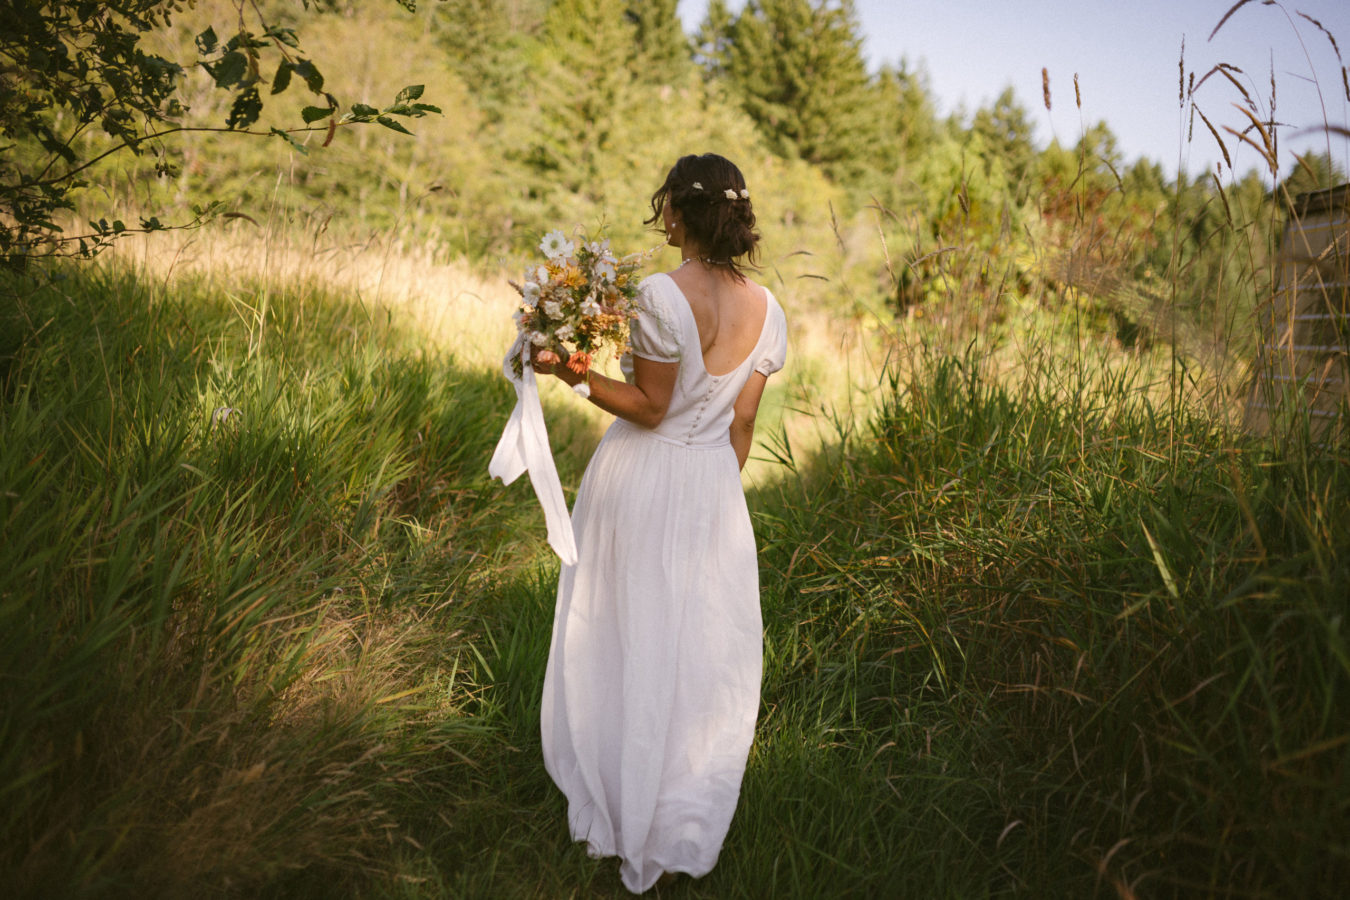 back of a bride in her wedding dress walking away in a field holding her bouquet of flowers